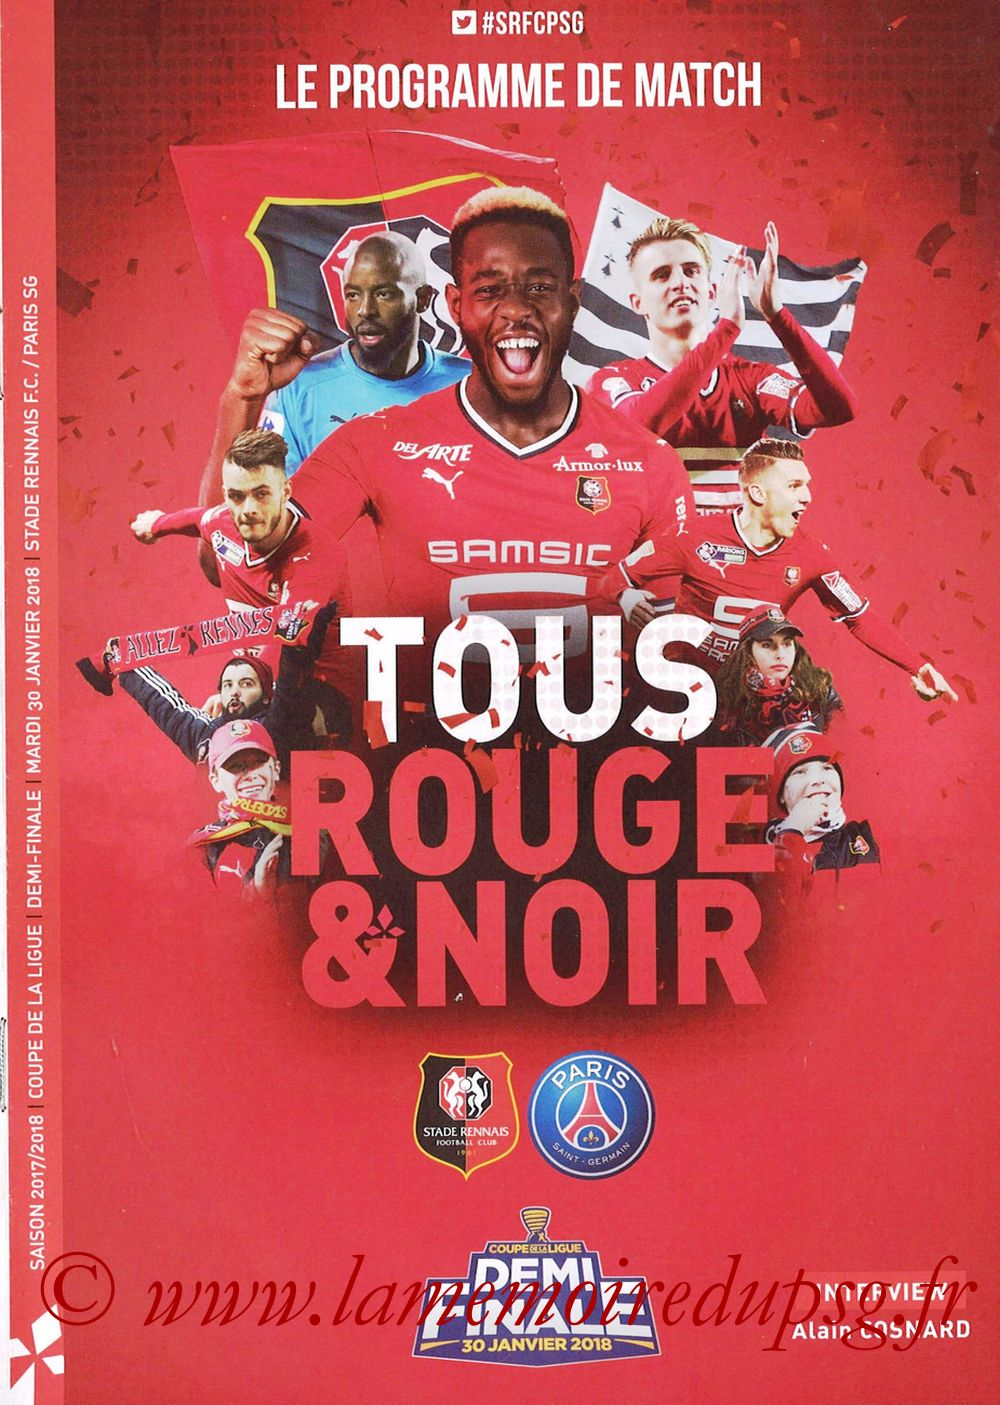 2018-01-30  Rennes-PSG (Demi CL, Programme Officiel)